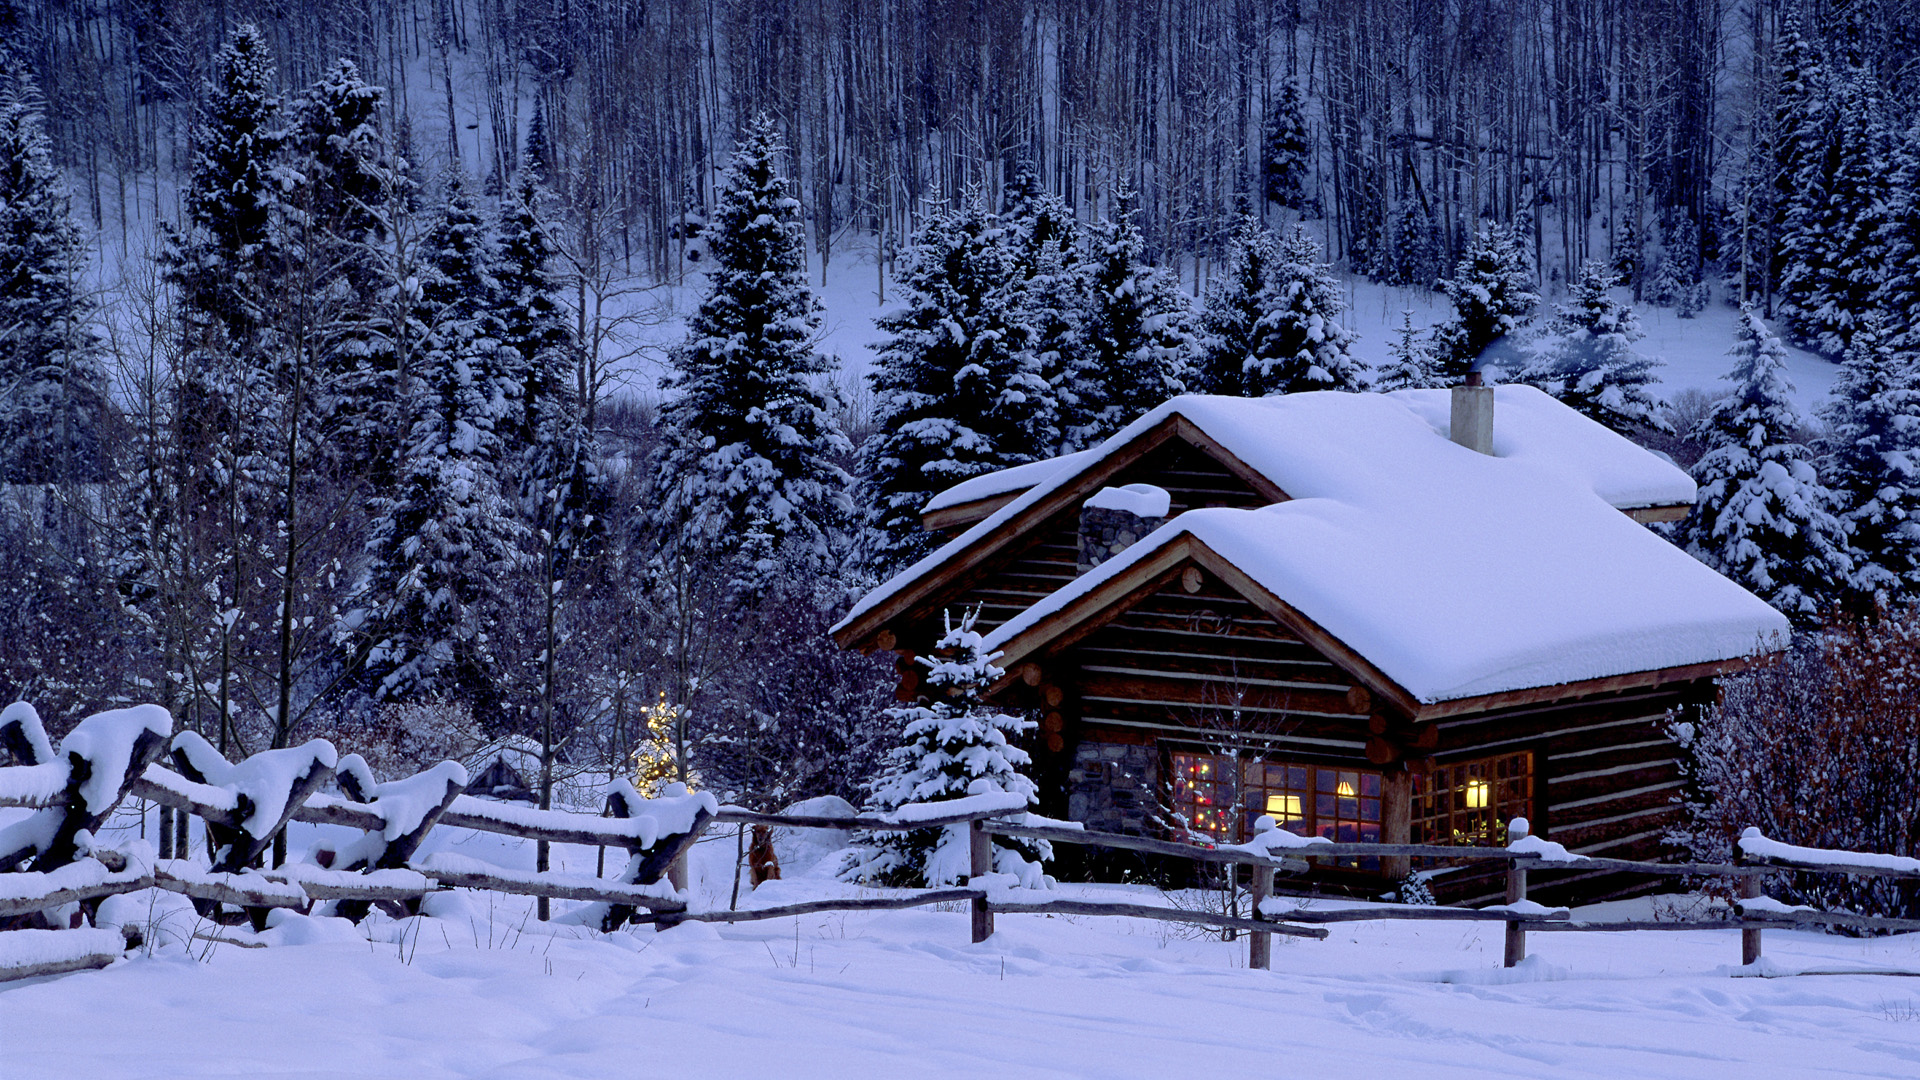 Click To Free Download The Wallpaper Scene After A Heavy Snow Warm